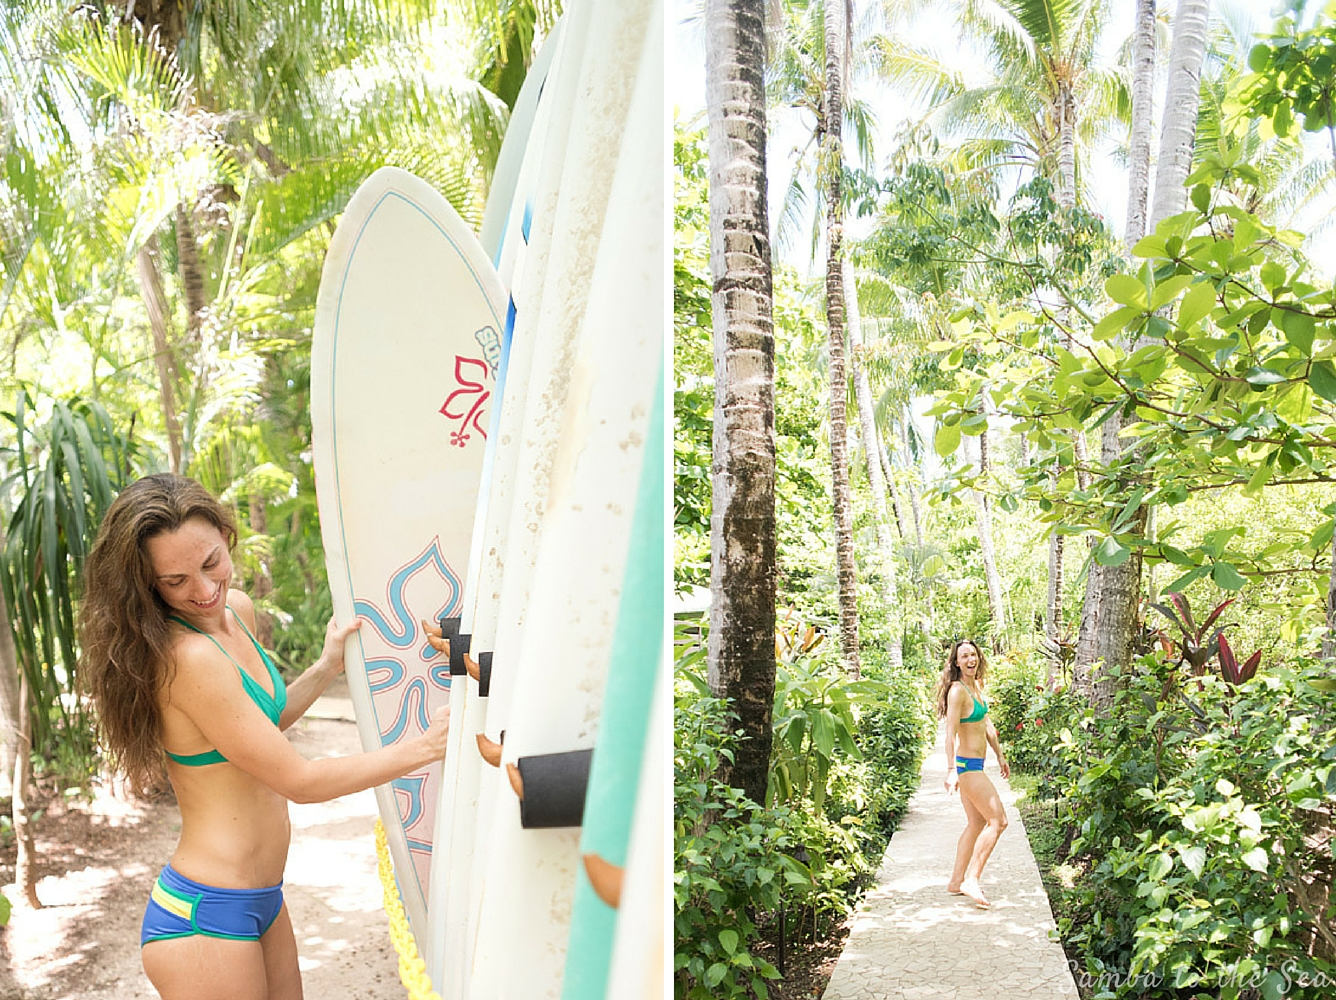 Lifestyle photo shoot for Kim (@_thesunnyside_) at The Harmony Hotel in Nosara, Costa Rica. Kim is wearing a MI OLA surf bikini. Photographed by Kristen M. Brown, Samba to the Sea Photography.